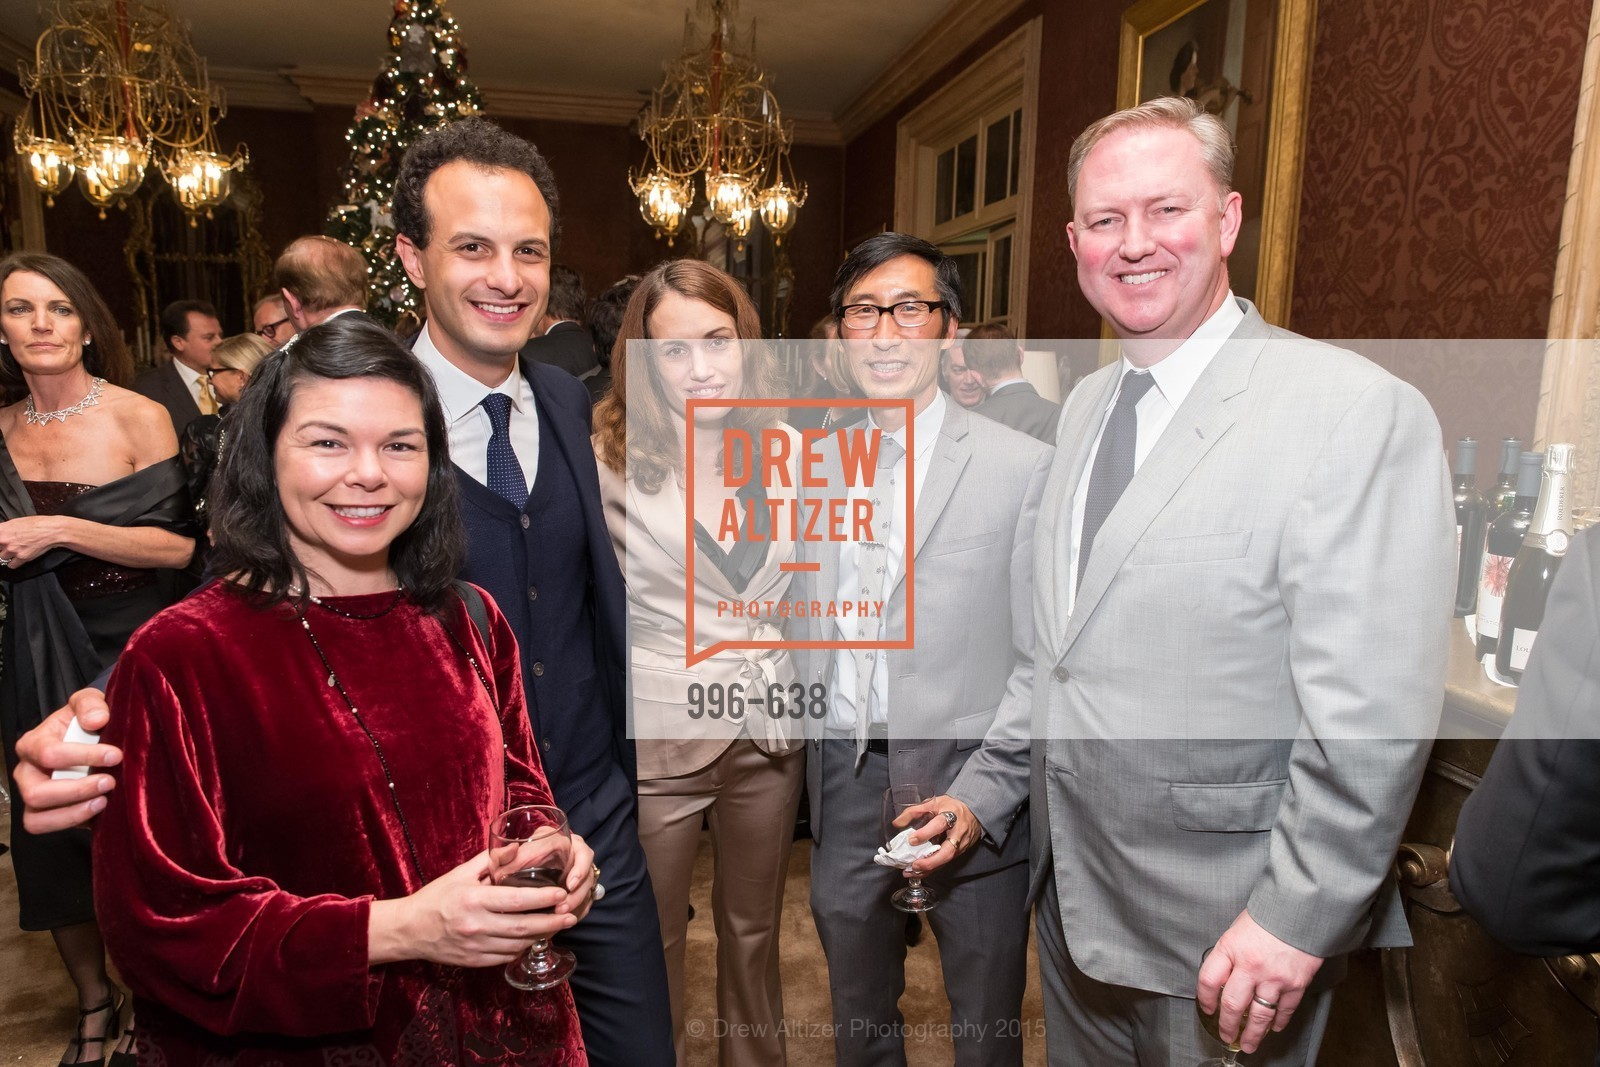 Tracy Teraoka, Nicholas Josefowitz, Eric Mar, Chris Gruwell, San Francisco Mayor's Office of Protocol Christmas Party, Private Residence, December 9th, 2015,Drew Altizer, Drew Altizer Photography, full-service event agency, private events, San Francisco photographer, photographer California